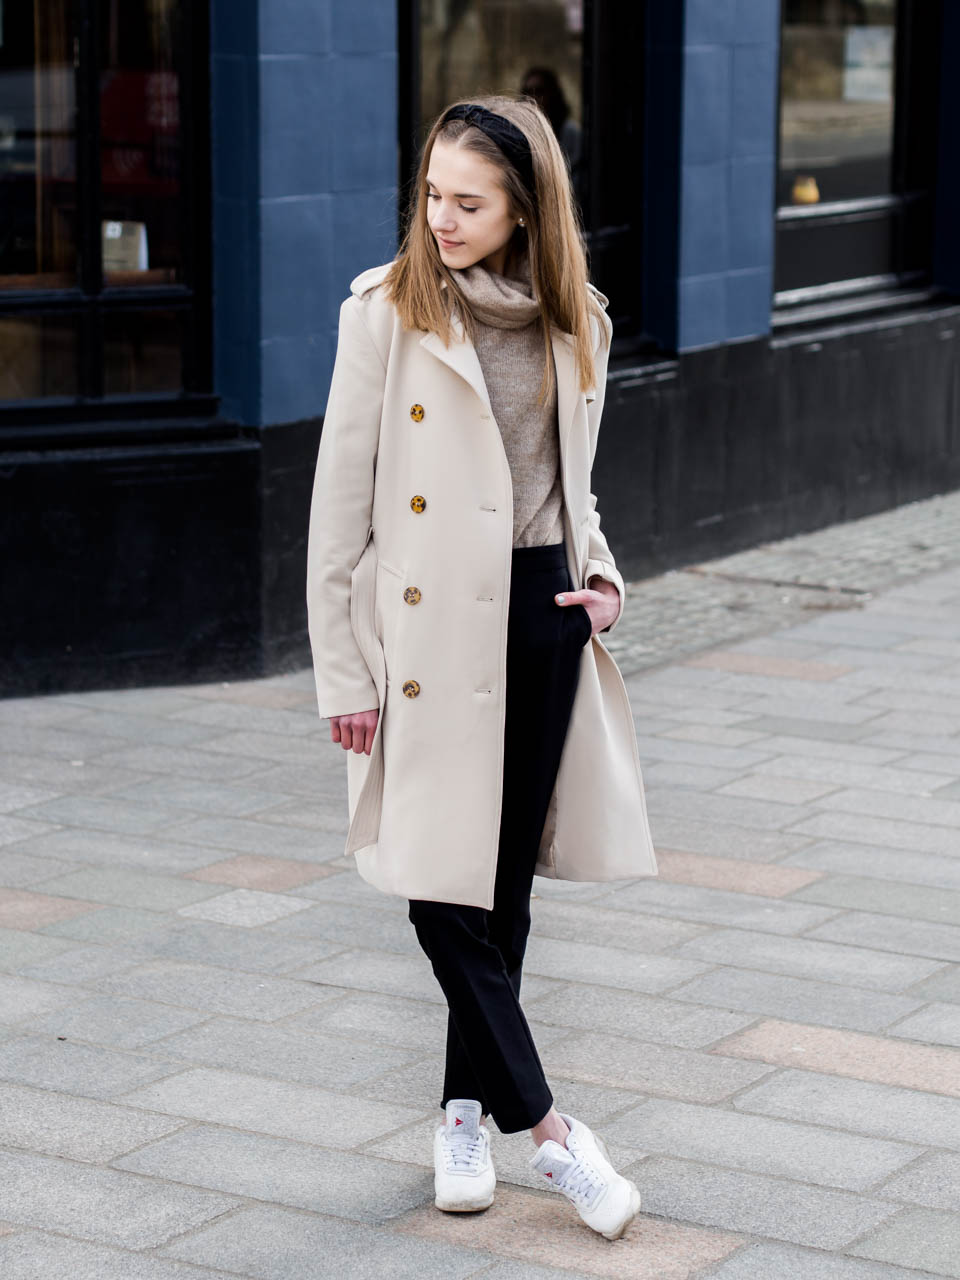 trench-coat-outfit-fashion-blogger-neutral-tones